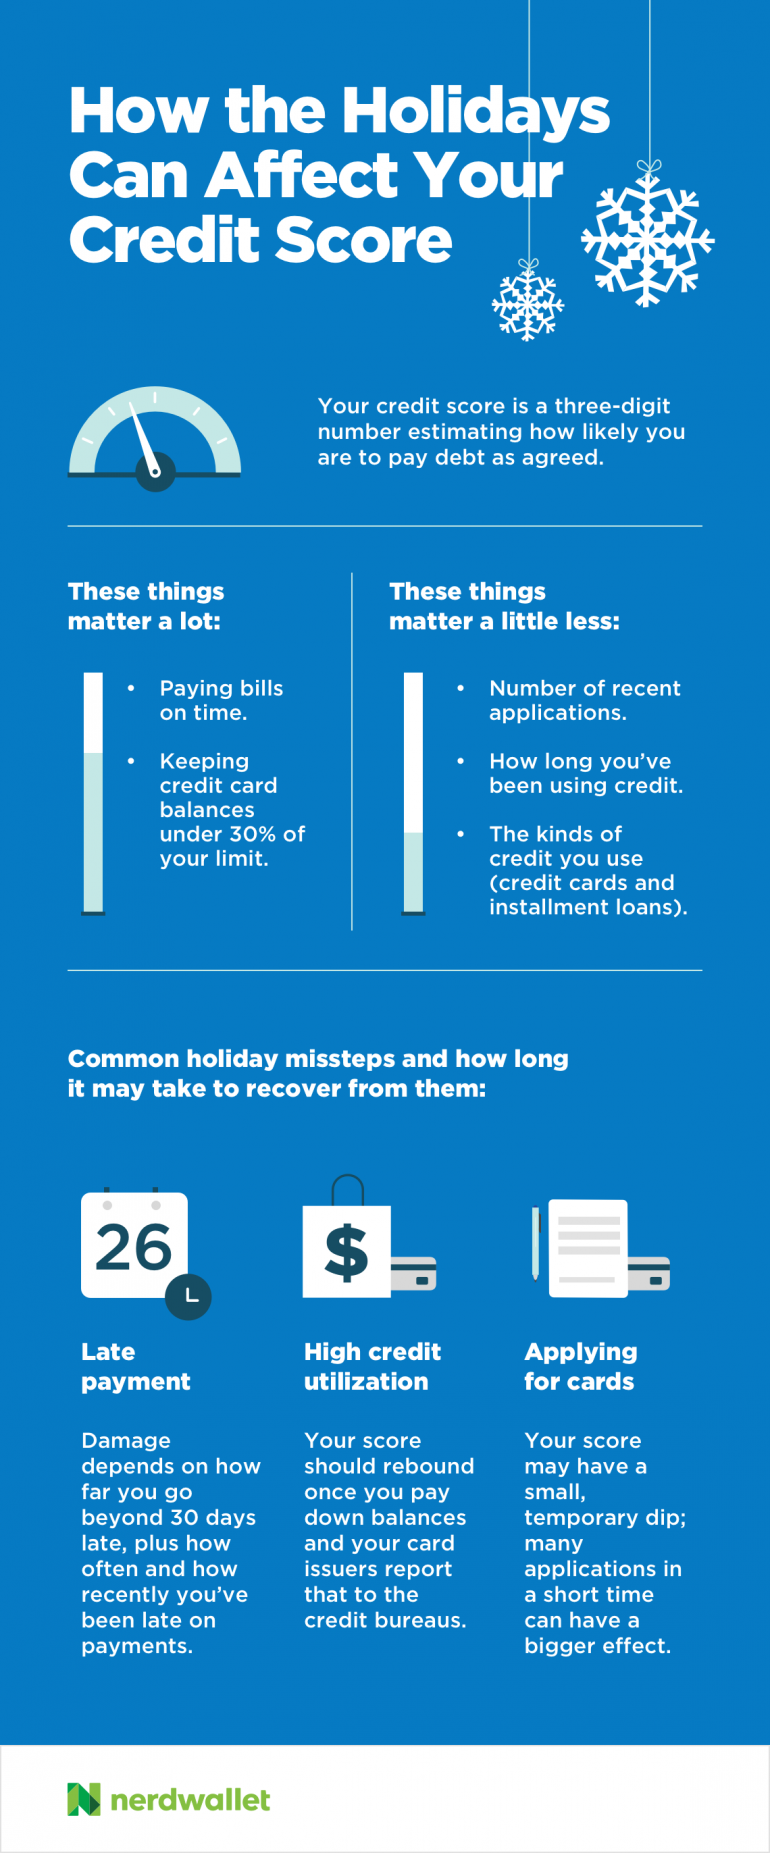 4 Tips to Protect Your Credit Score During the Hoidays